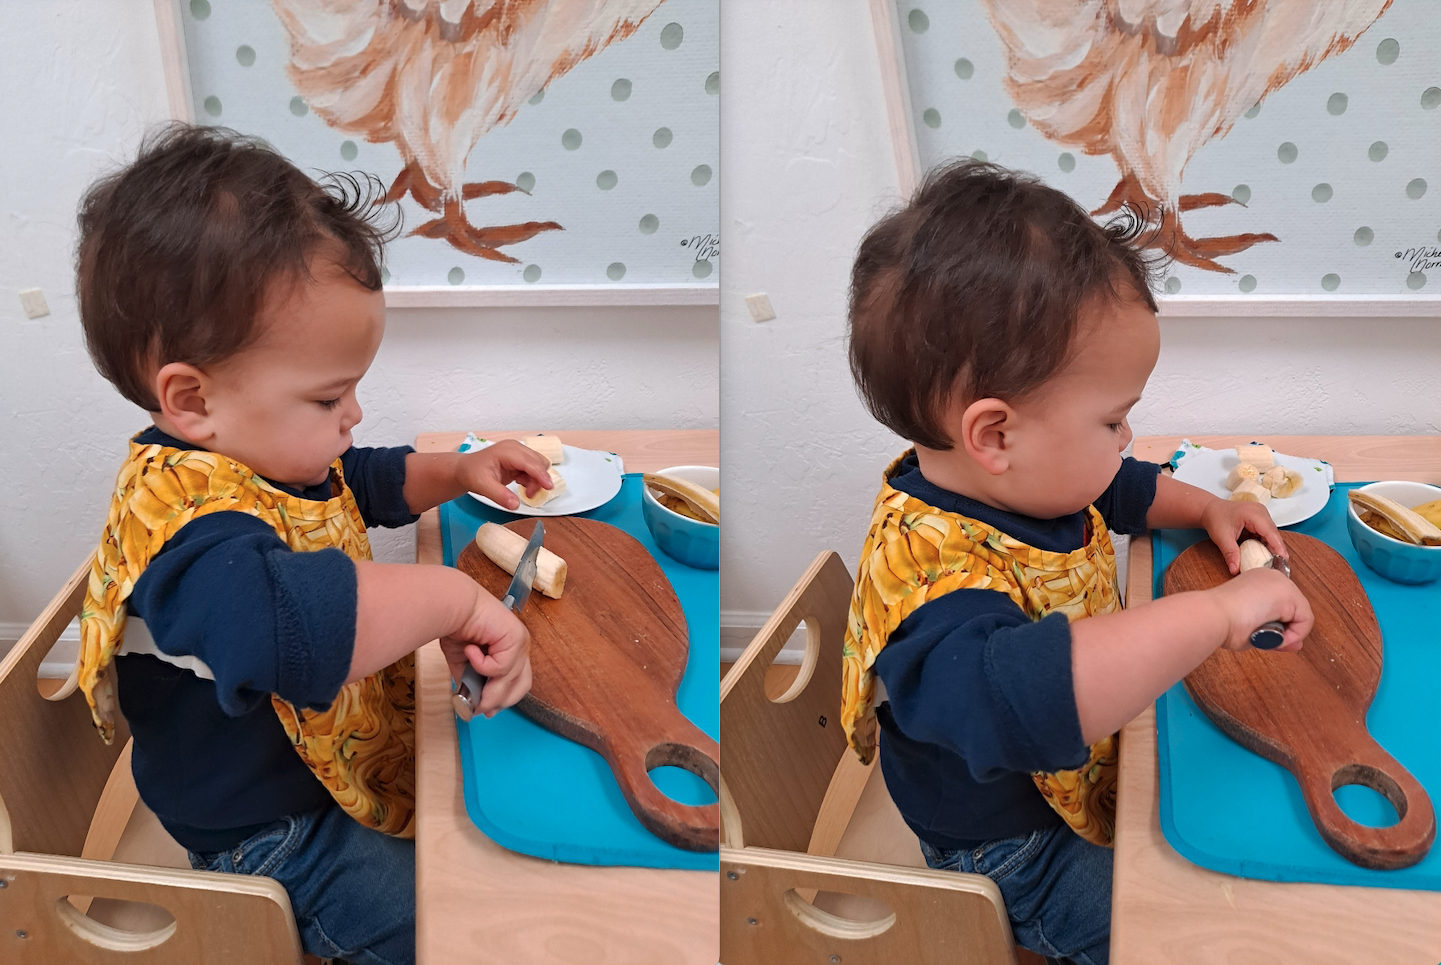 Toddler Cutting a Banana Independently at La Jolla Montessori School